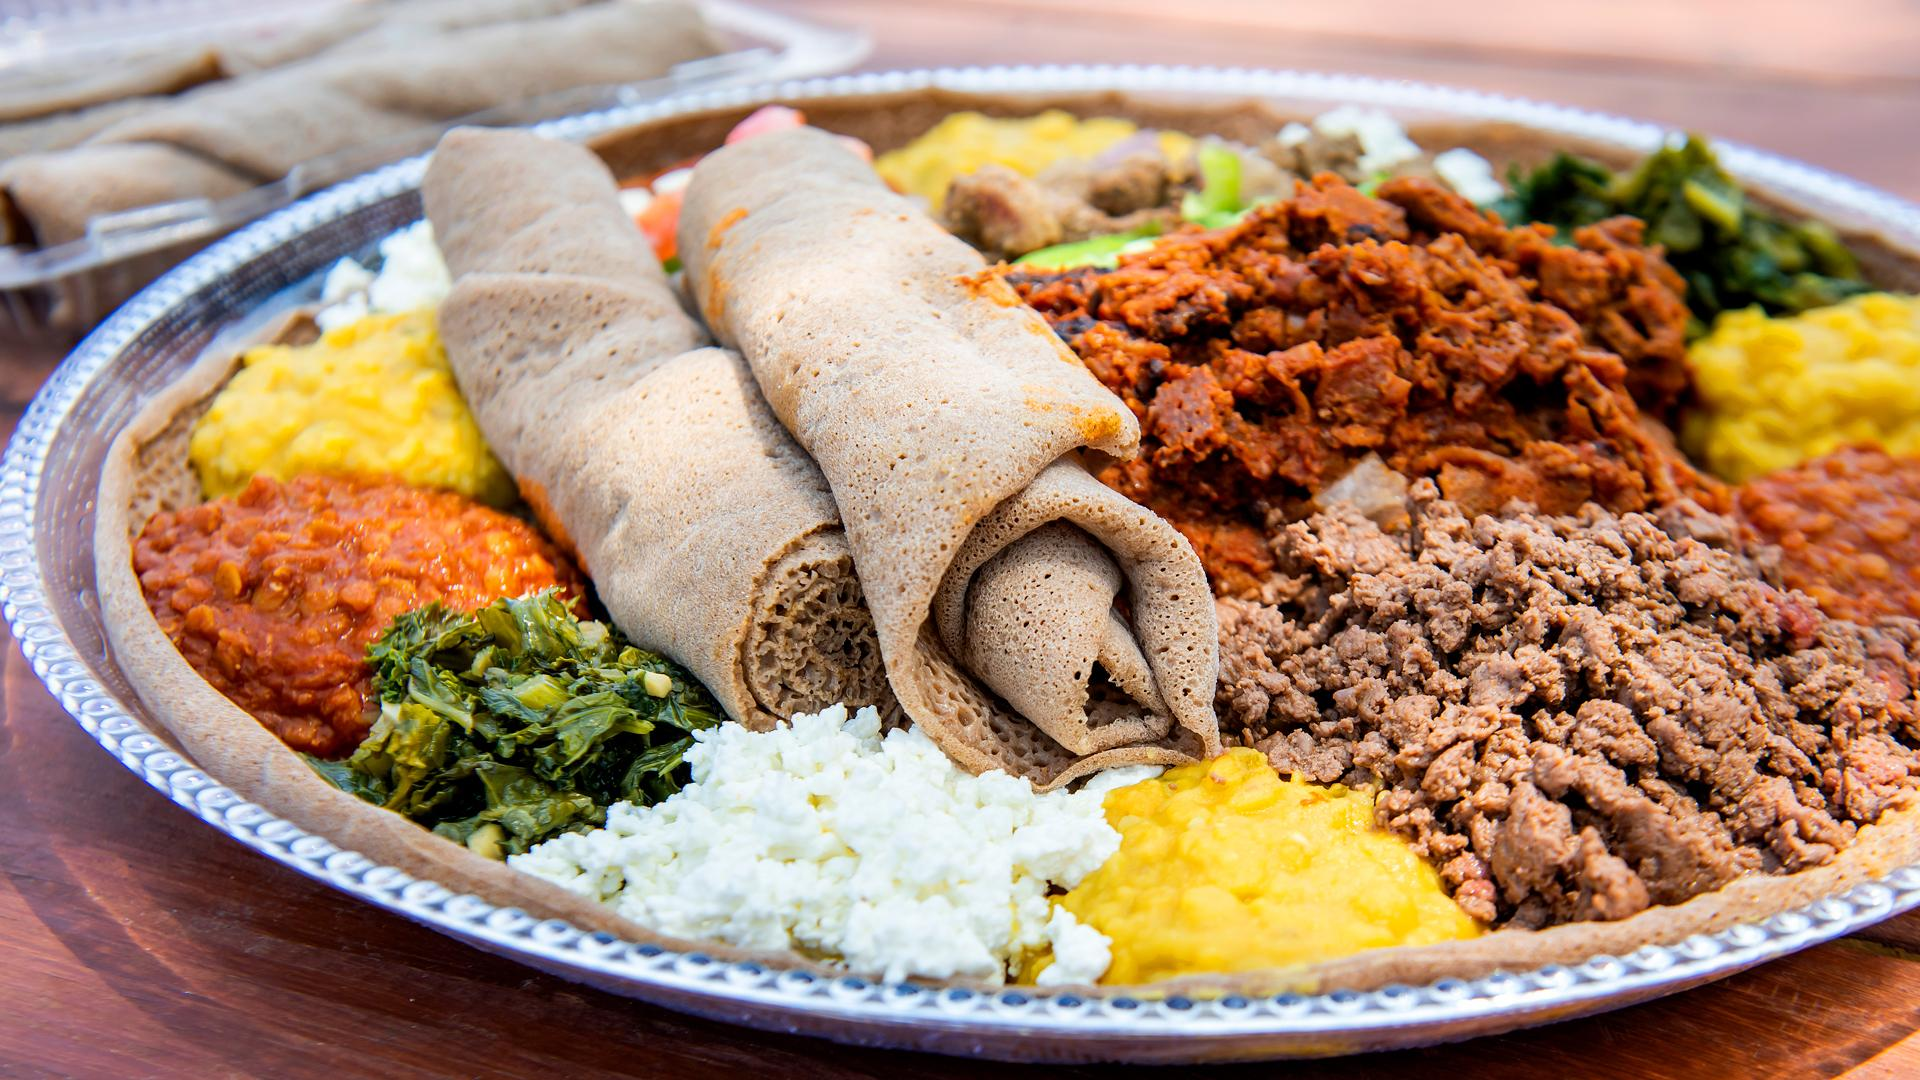 The best Toronto food markets   Injera with firfir, yemisir wat and other sauces at Market 707